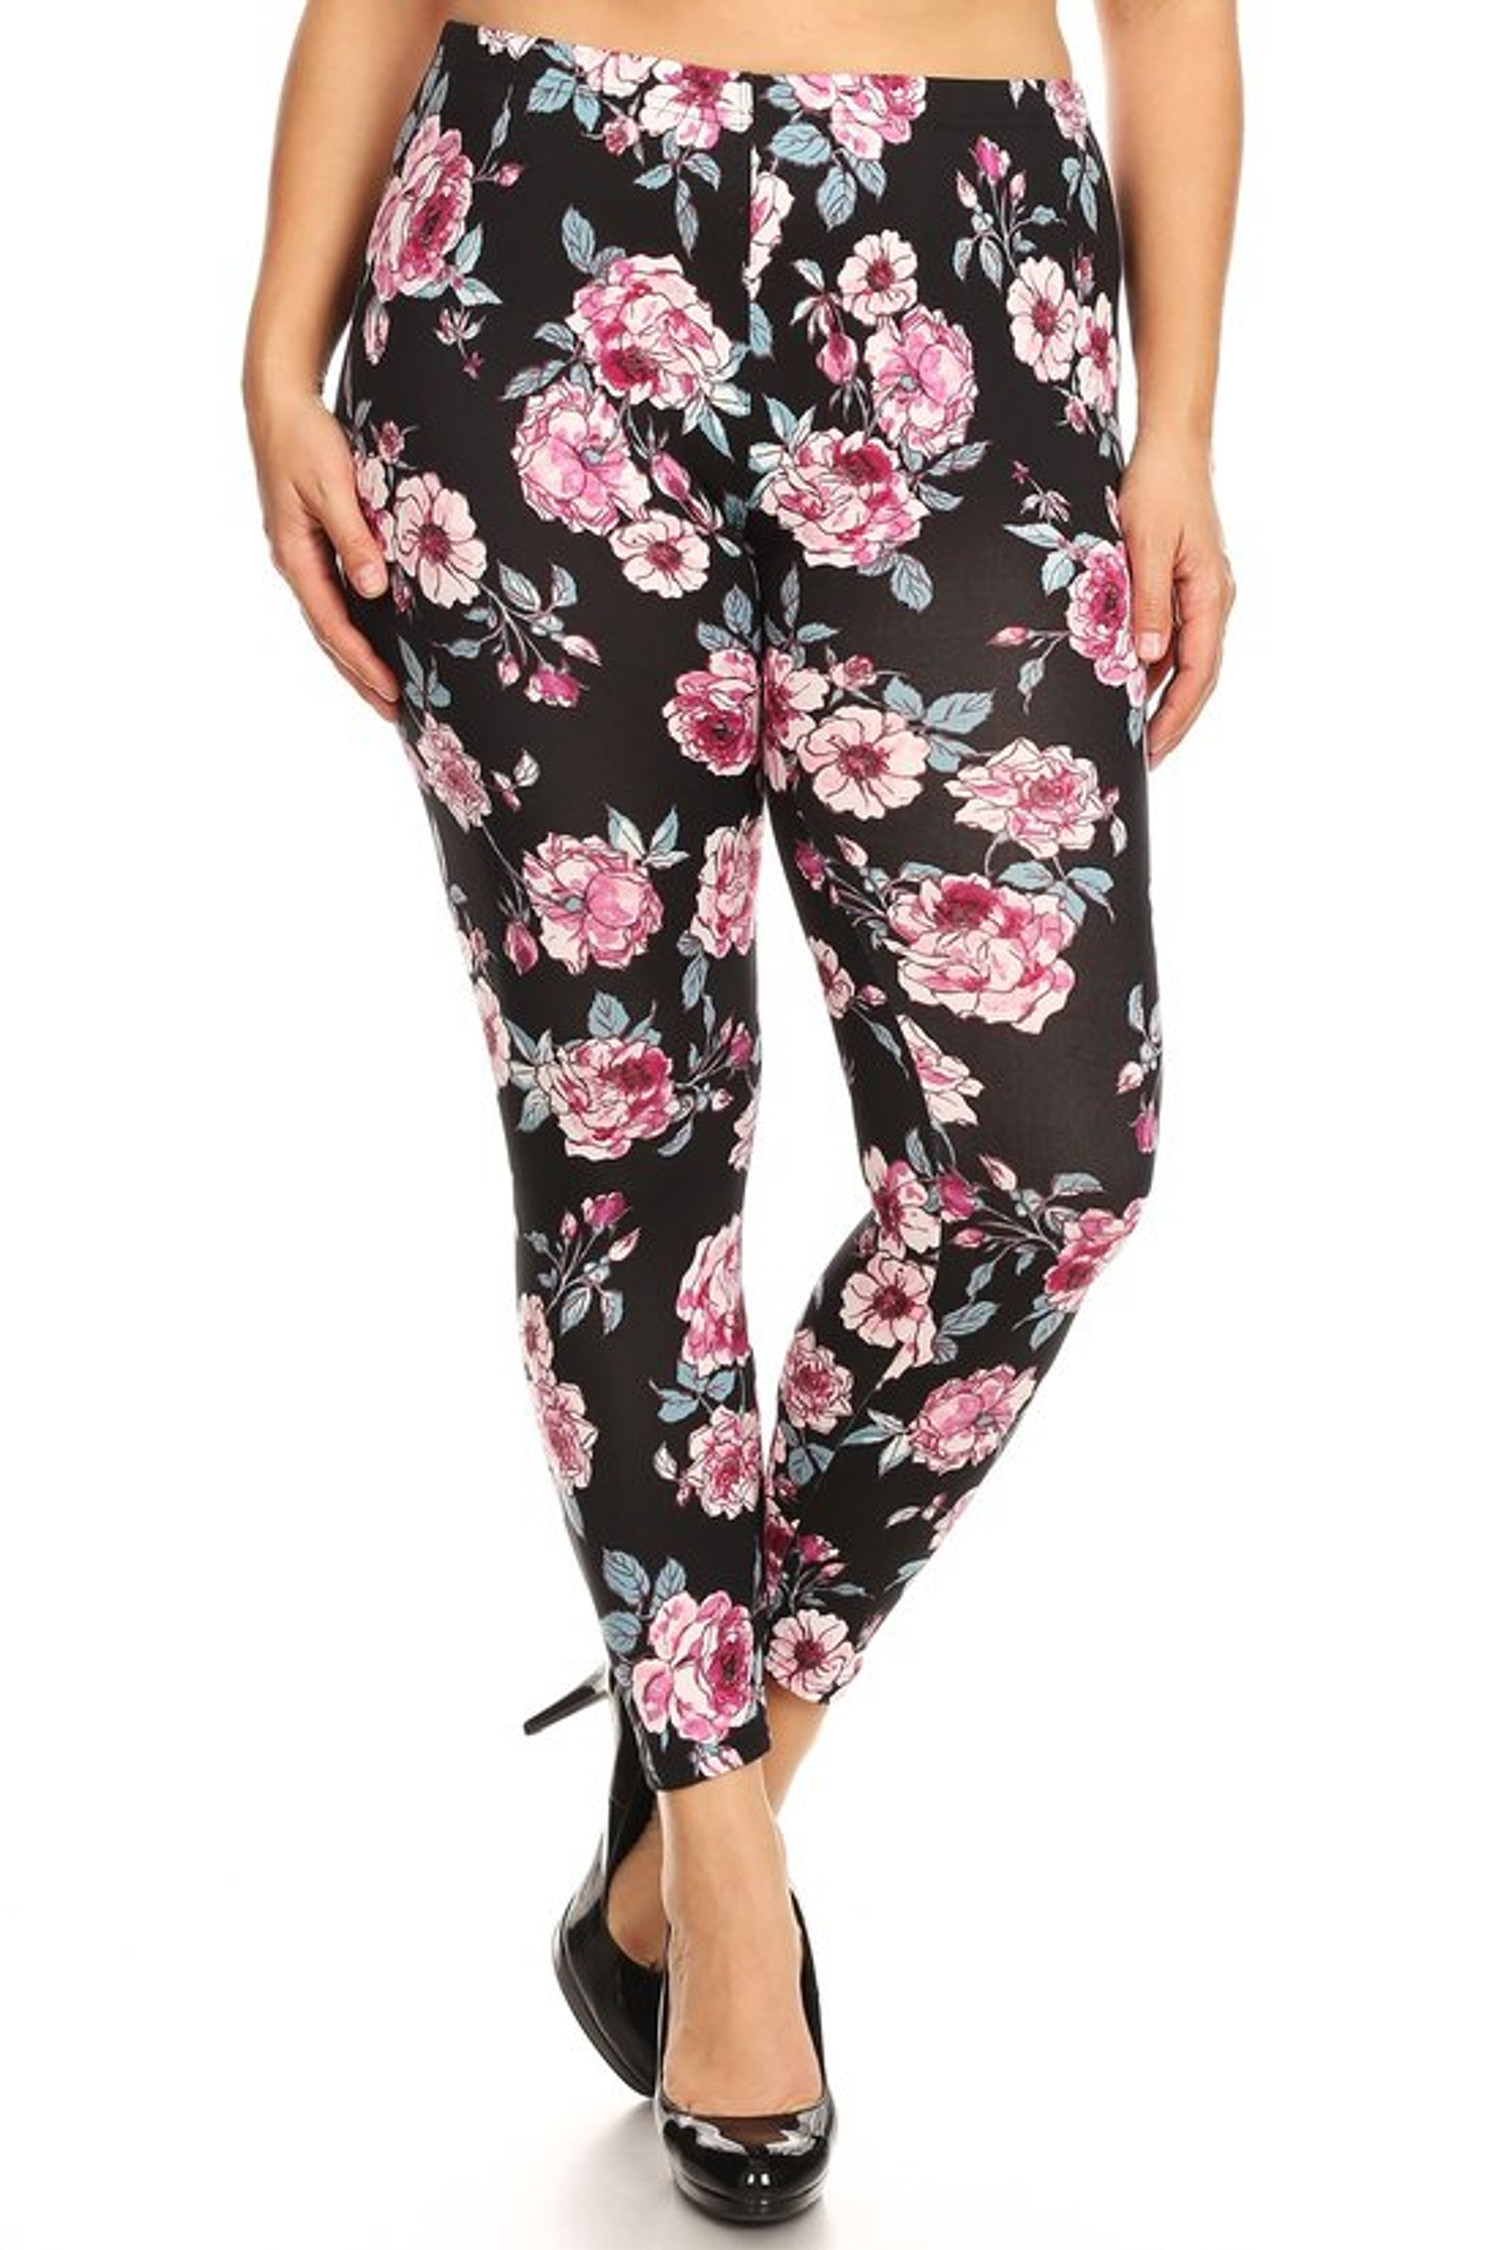 Brushed Perfect Pink Rose Plus Size Leggings